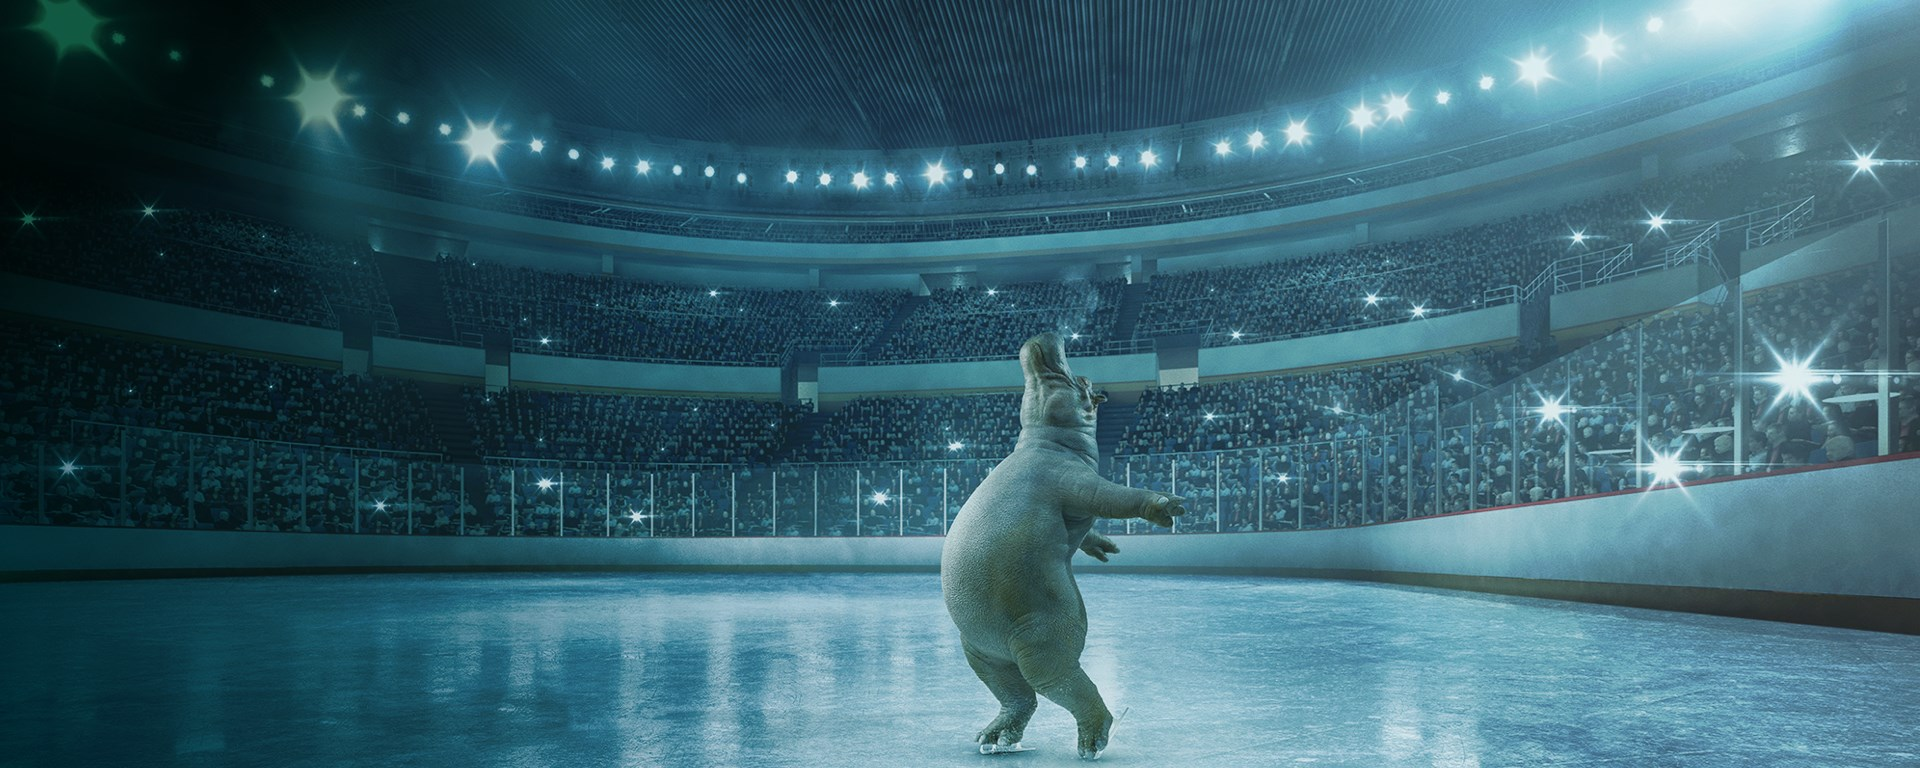 Instant Finance Hippo skating in a blue ice rink